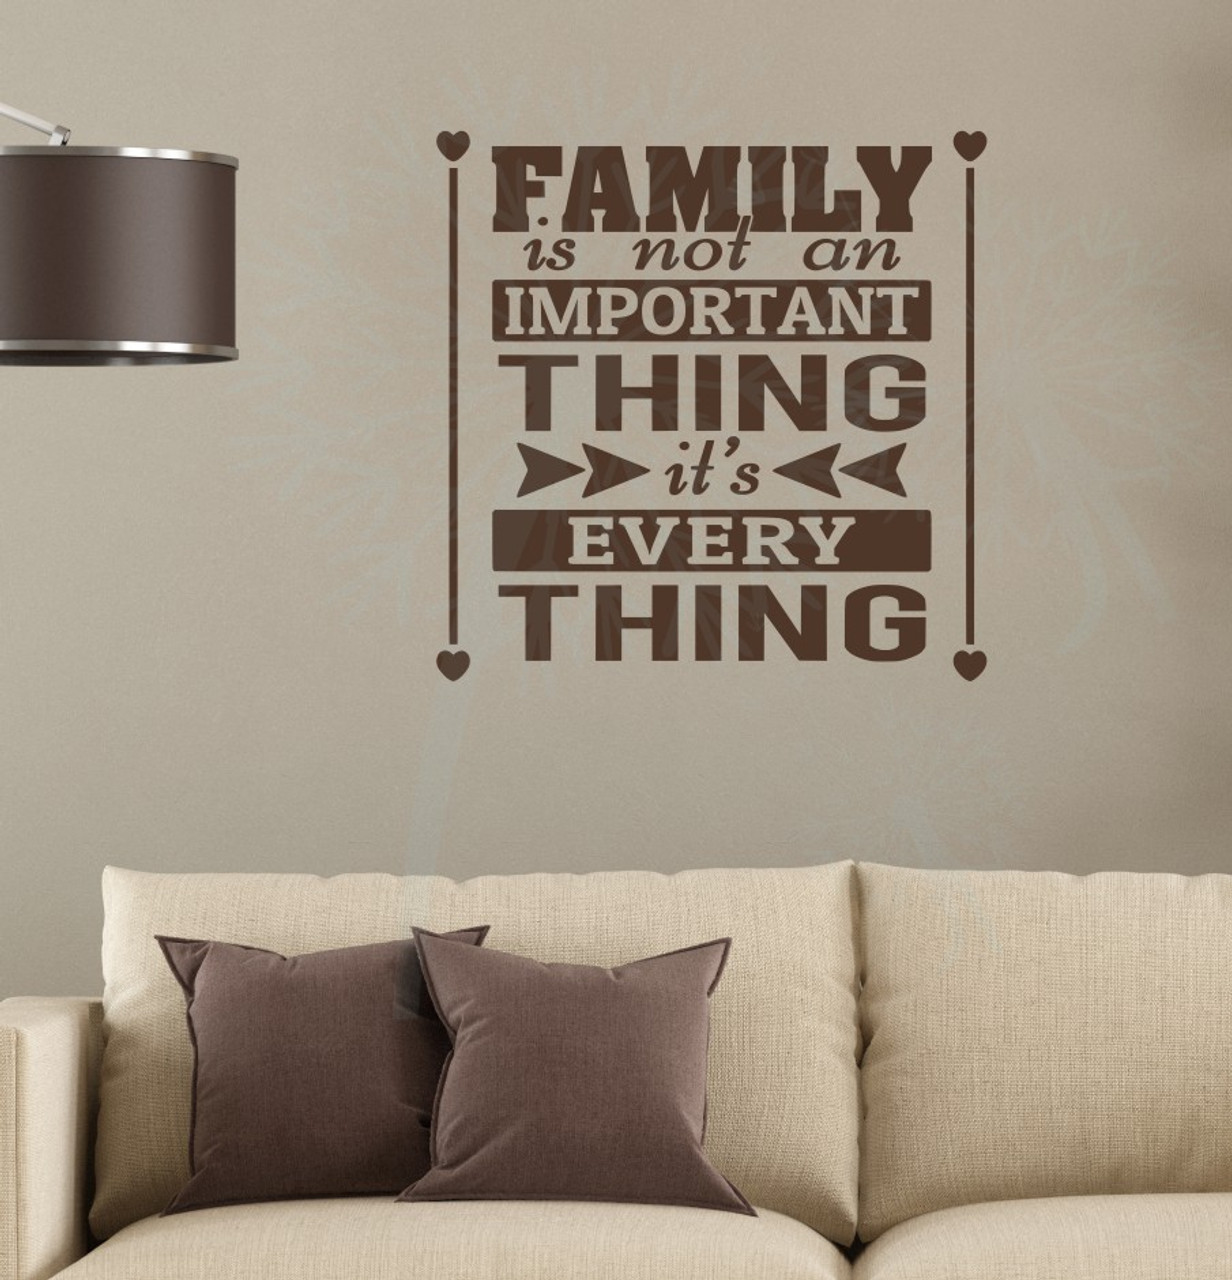 Family Is Everything Home Decor Vinyl Lettering Family Wall Decals